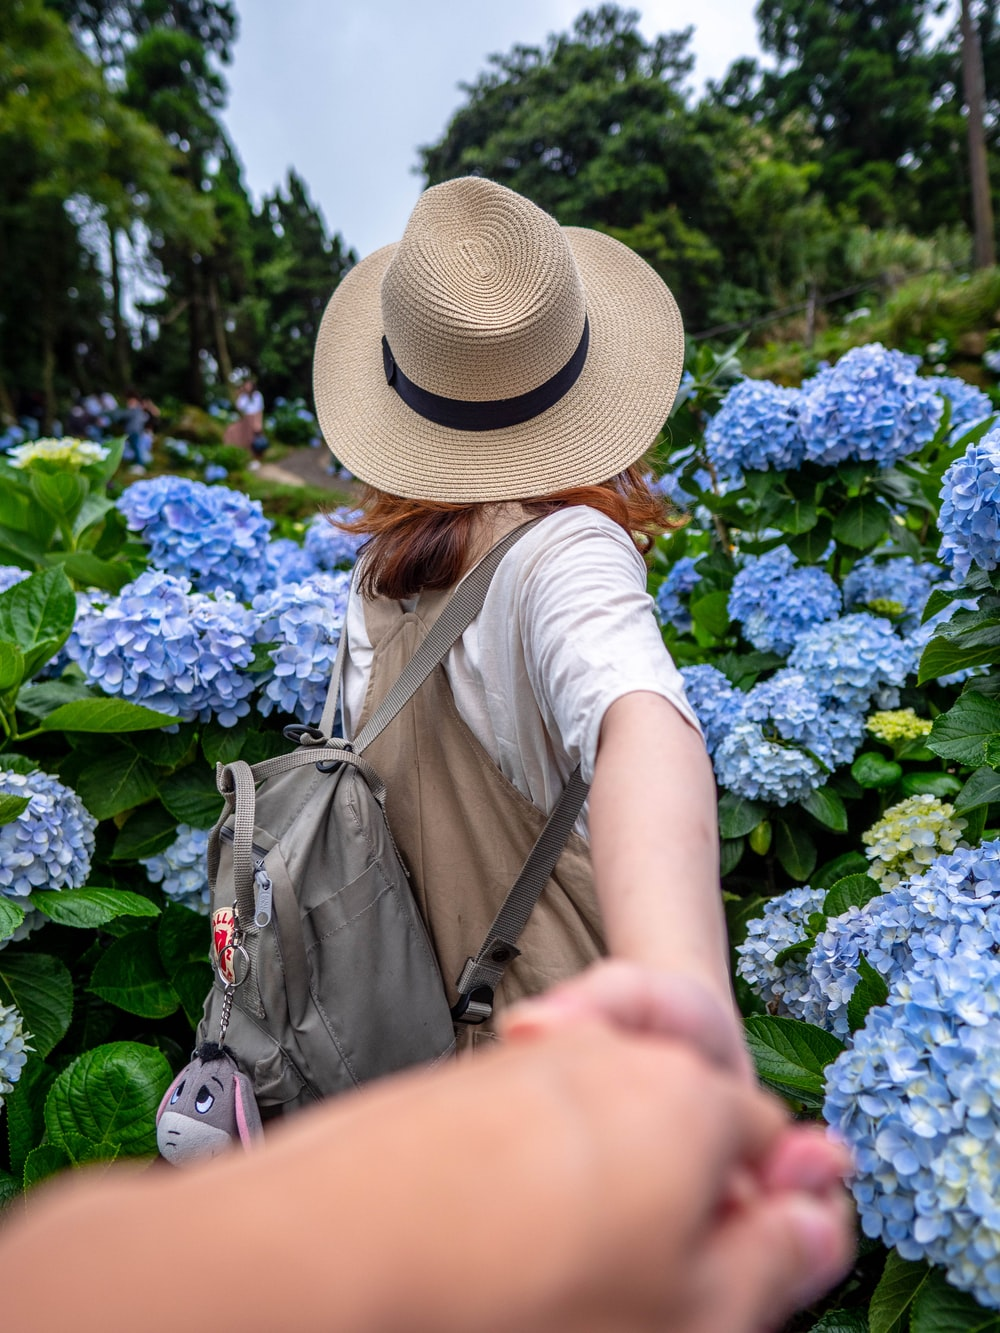 woman in white shirt and brown hat standing near blue flowers during daytime